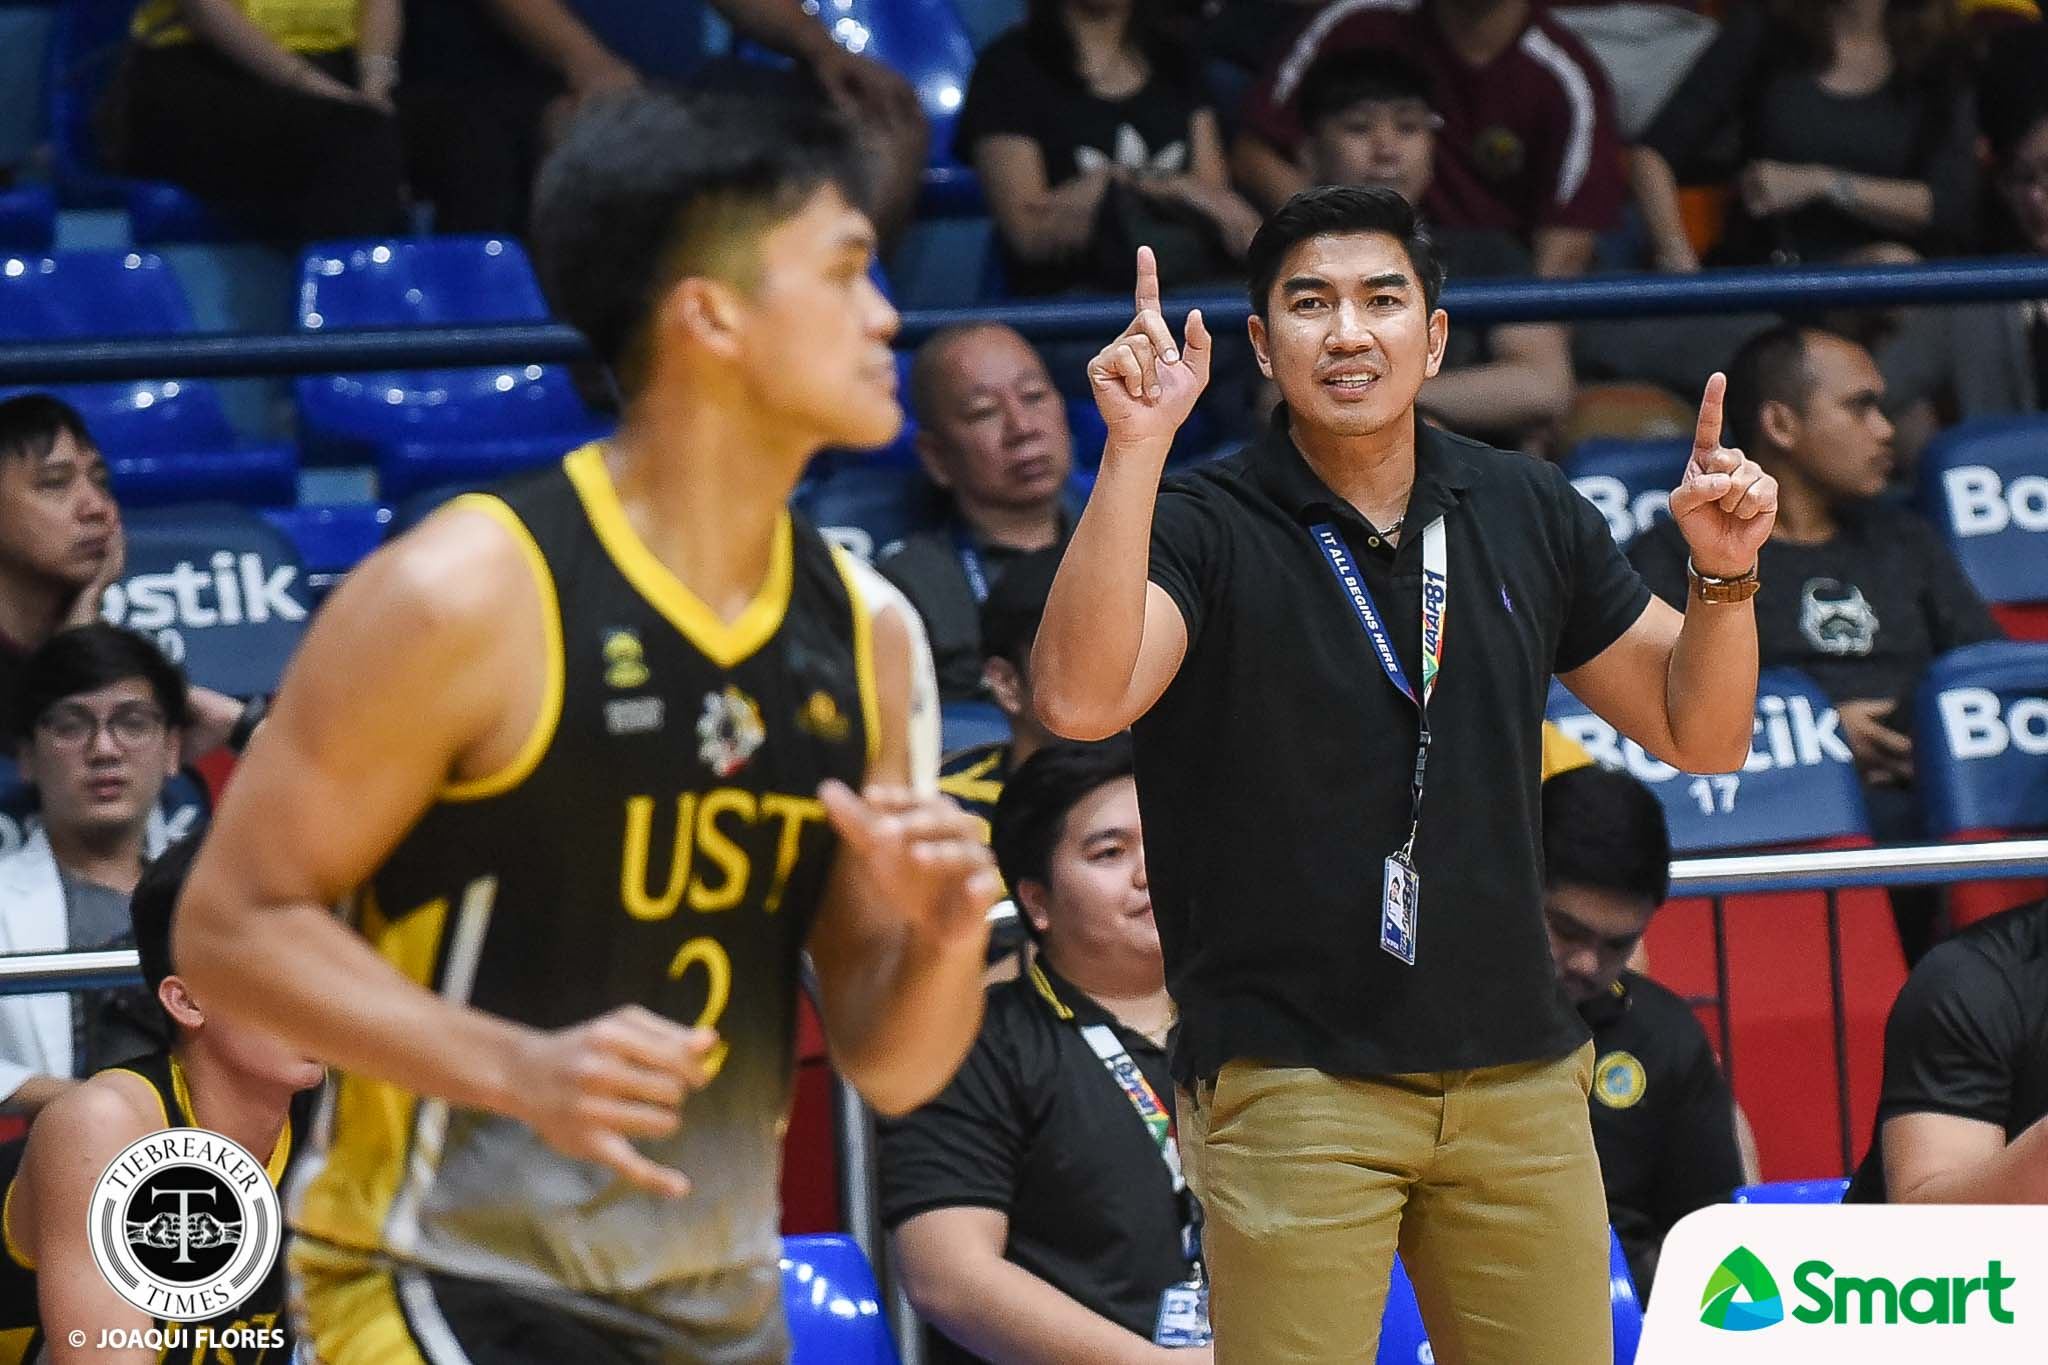 Tiebreaker Times SOURCES: UST stands by own Bicol bubble investigation despite appeal to UAAP Basketball News UAAP UST  UST Men's Basketball UAAP Season 83 Men's Basketball UAAP Season 83 Aldin Ayo